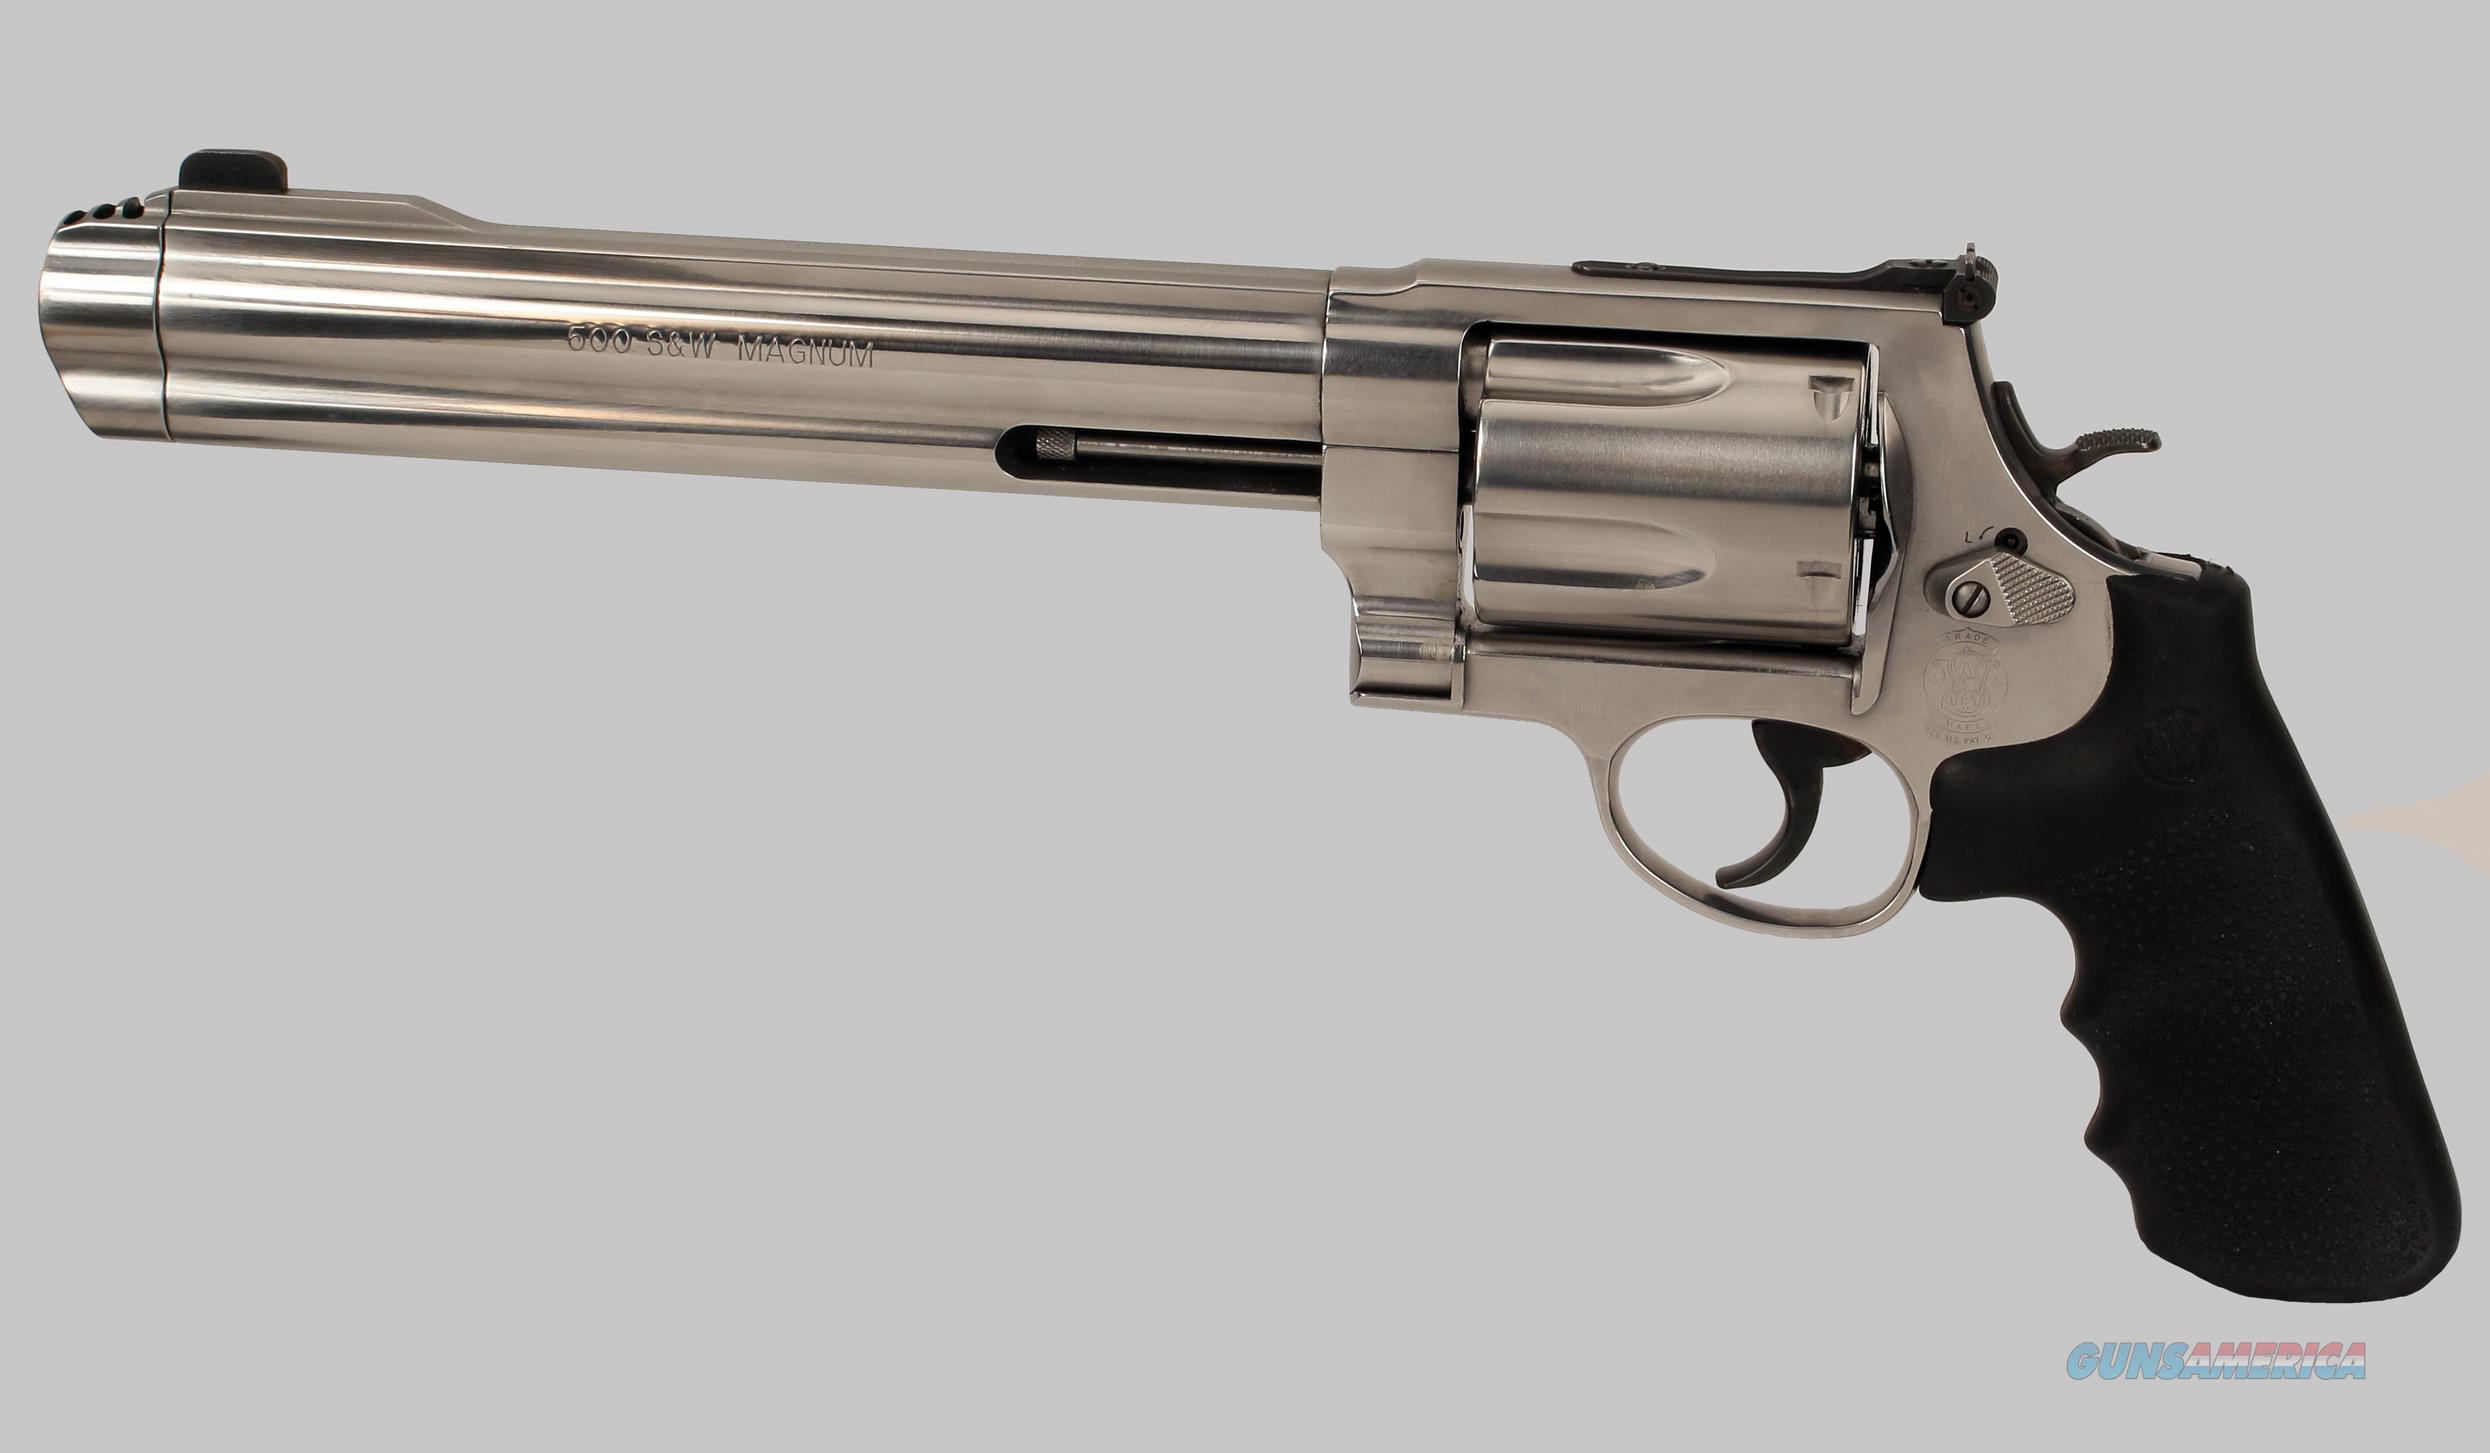 Smith & Wesson 500 Stainless Steel Revolver  Guns > Pistols > Smith & Wesson Revolvers > Full Frame Revolver